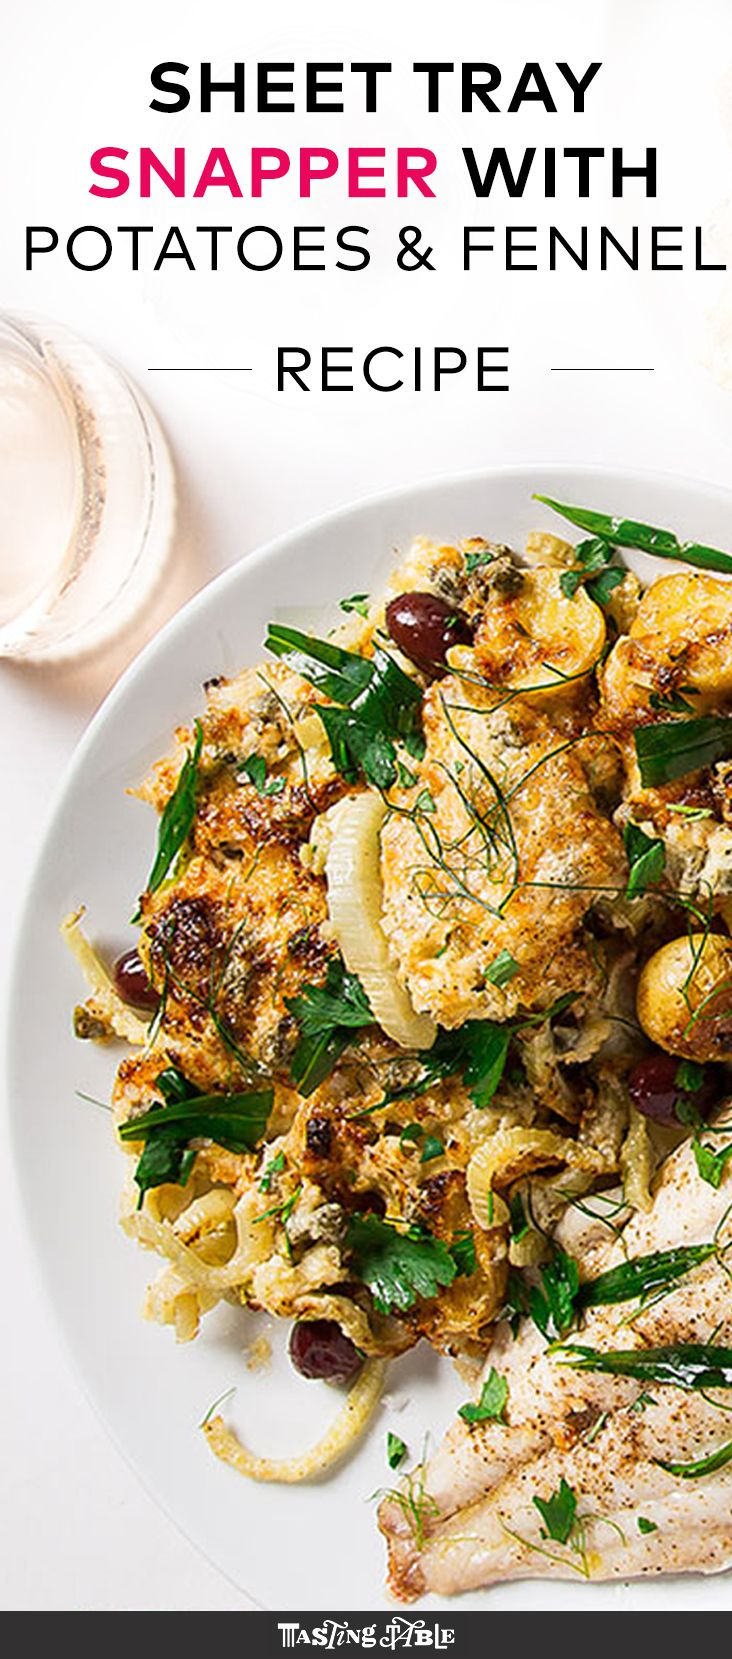 Snapper is served alongside roasted potatoes and fennel in this Mediterranean meal made on just one sheet tray.